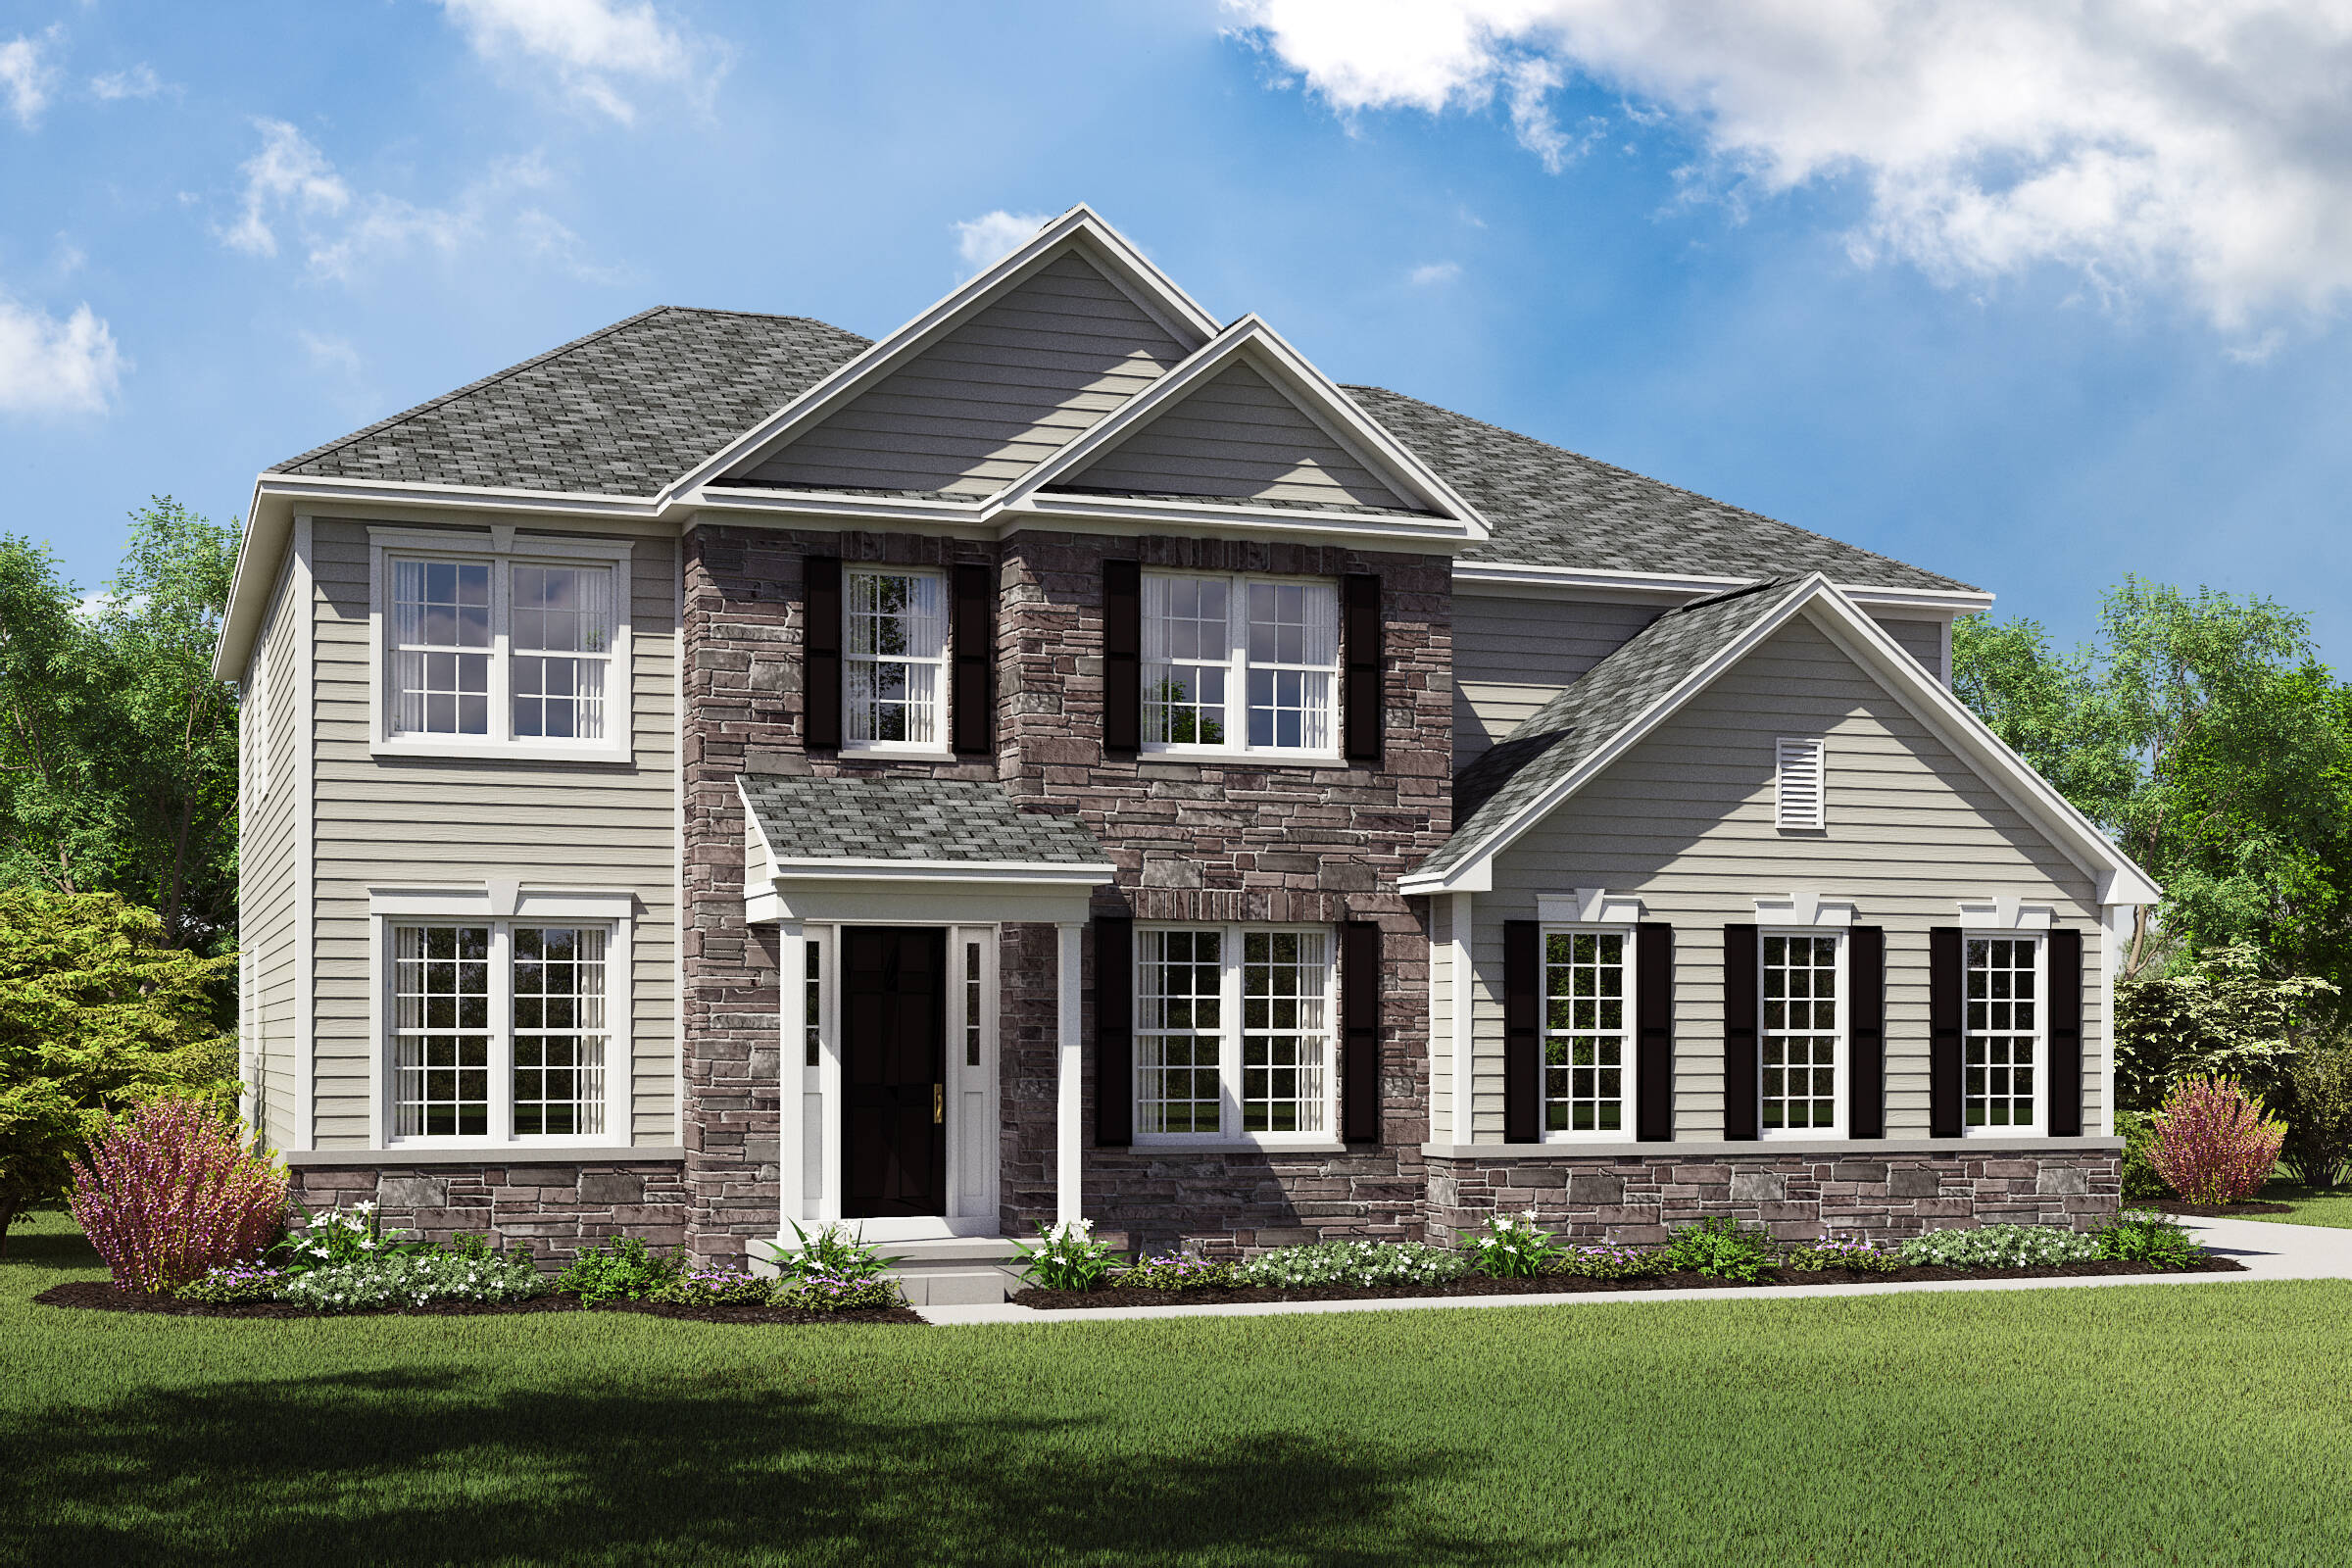 jasper MT SL stunning new homes k hovnanian homes